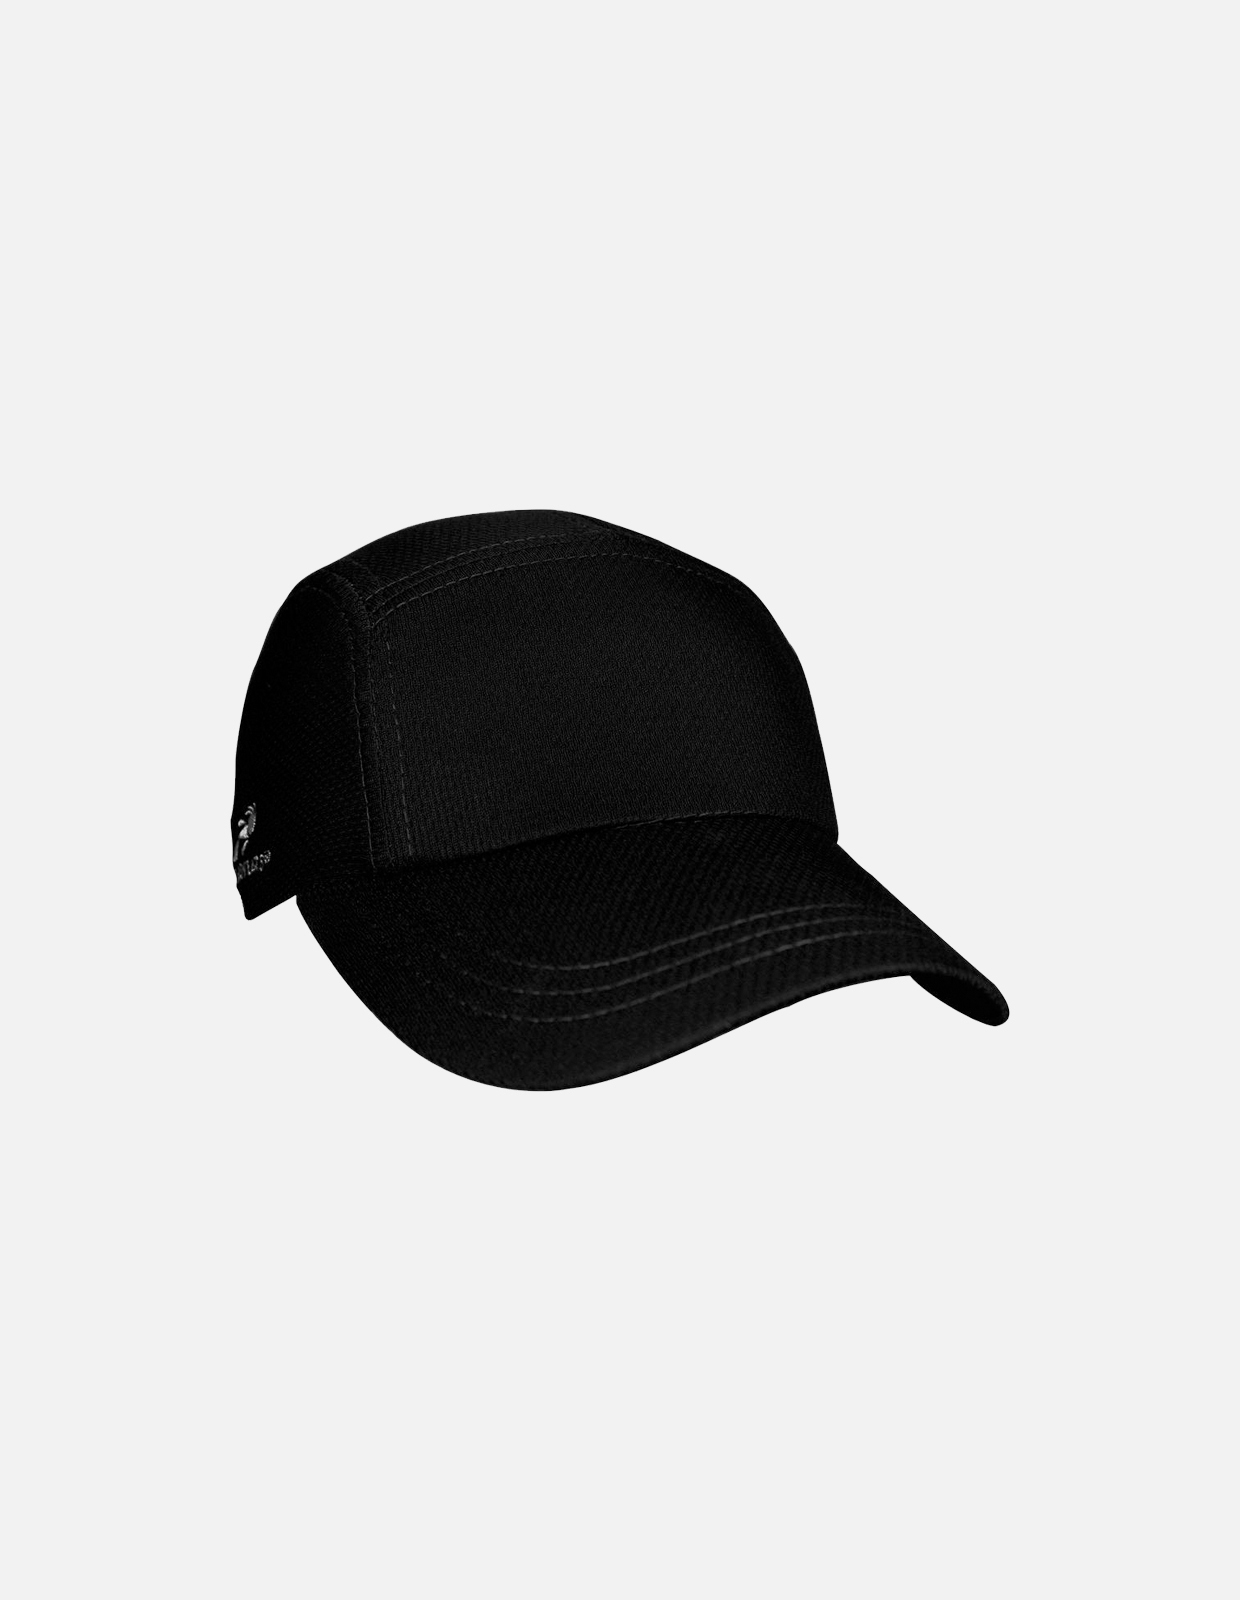 Headsweats hat black